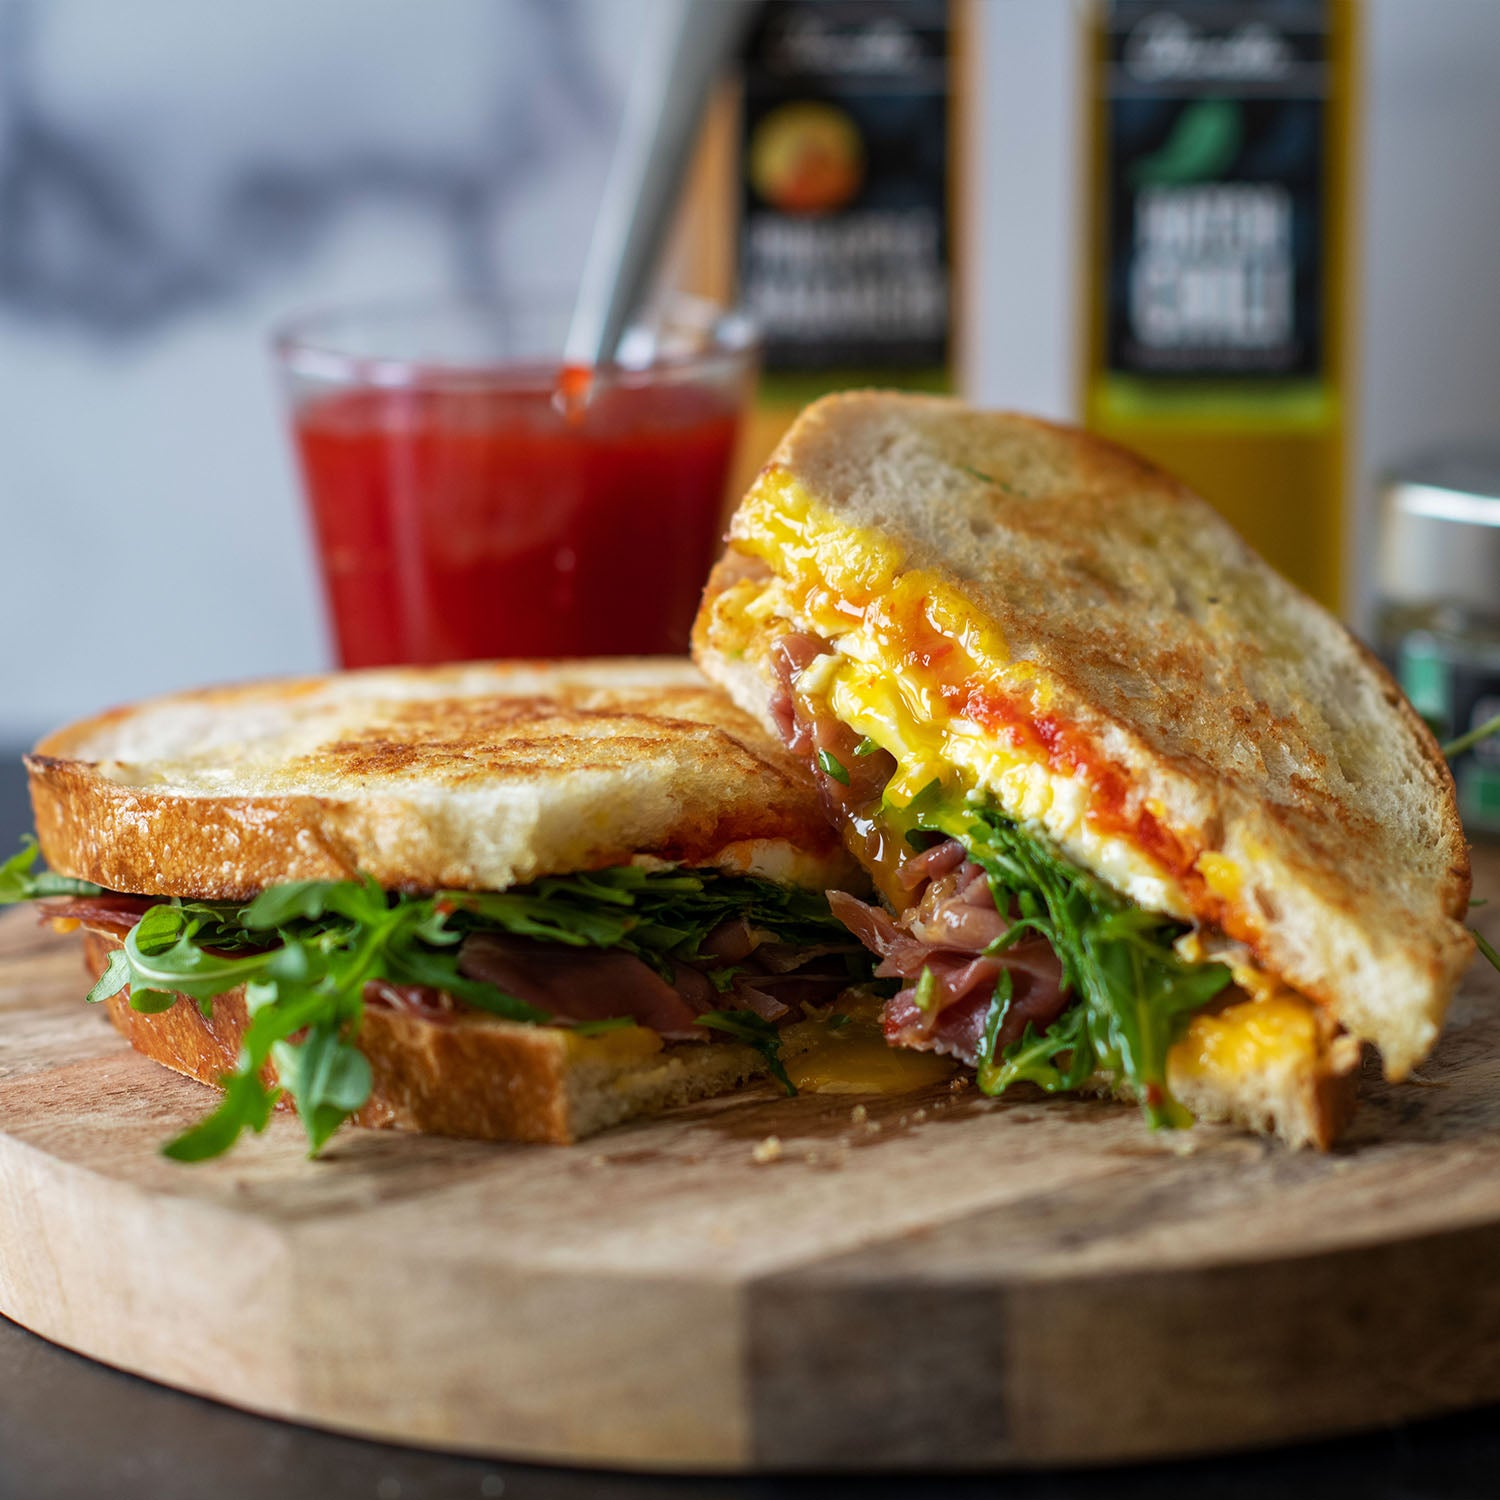 Fried Egg, Prosciutto, and Red Pepper Jam Breakfast Sandwich